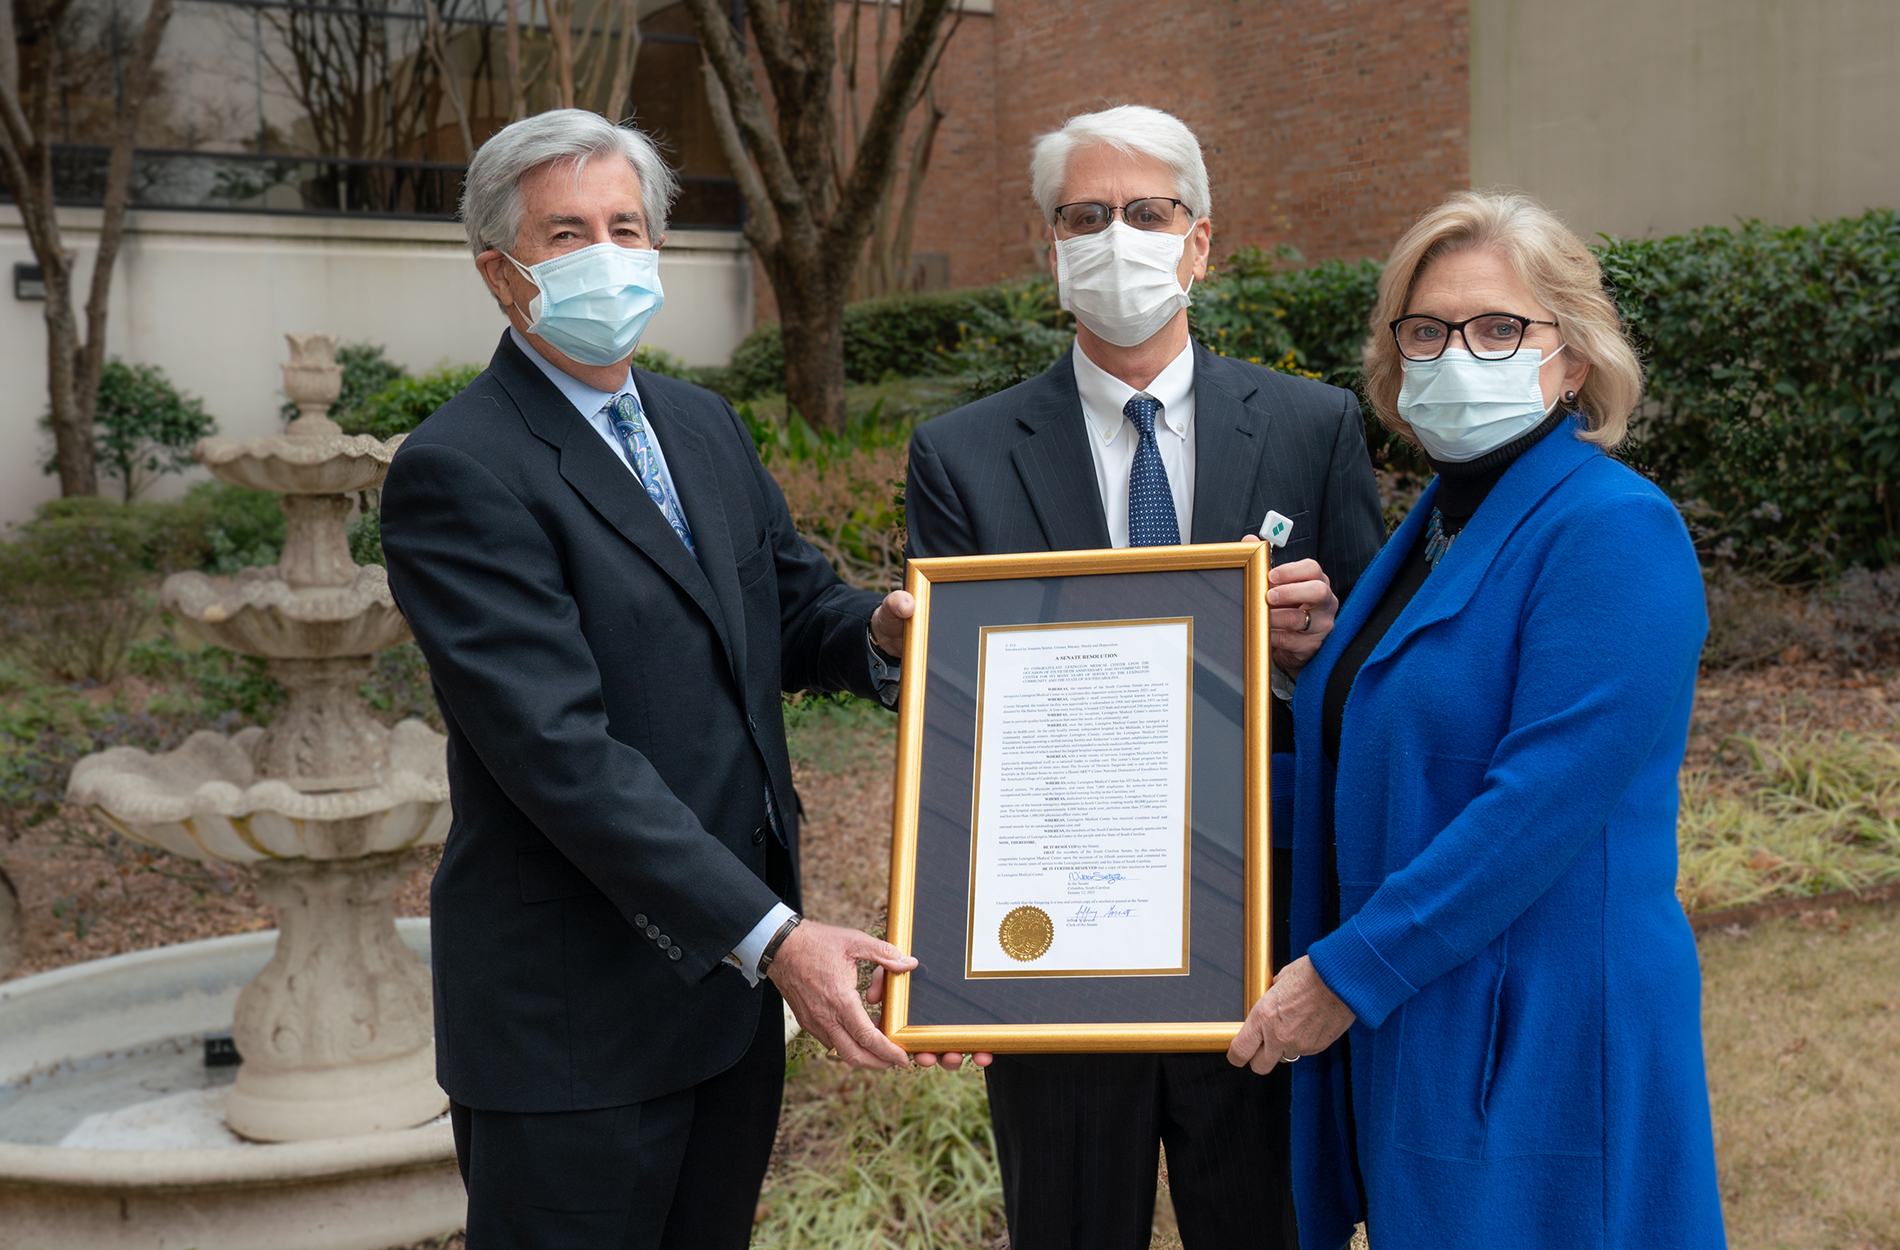 Sen. Setzler and Sen. Shealy present proclamation to LMC CEO